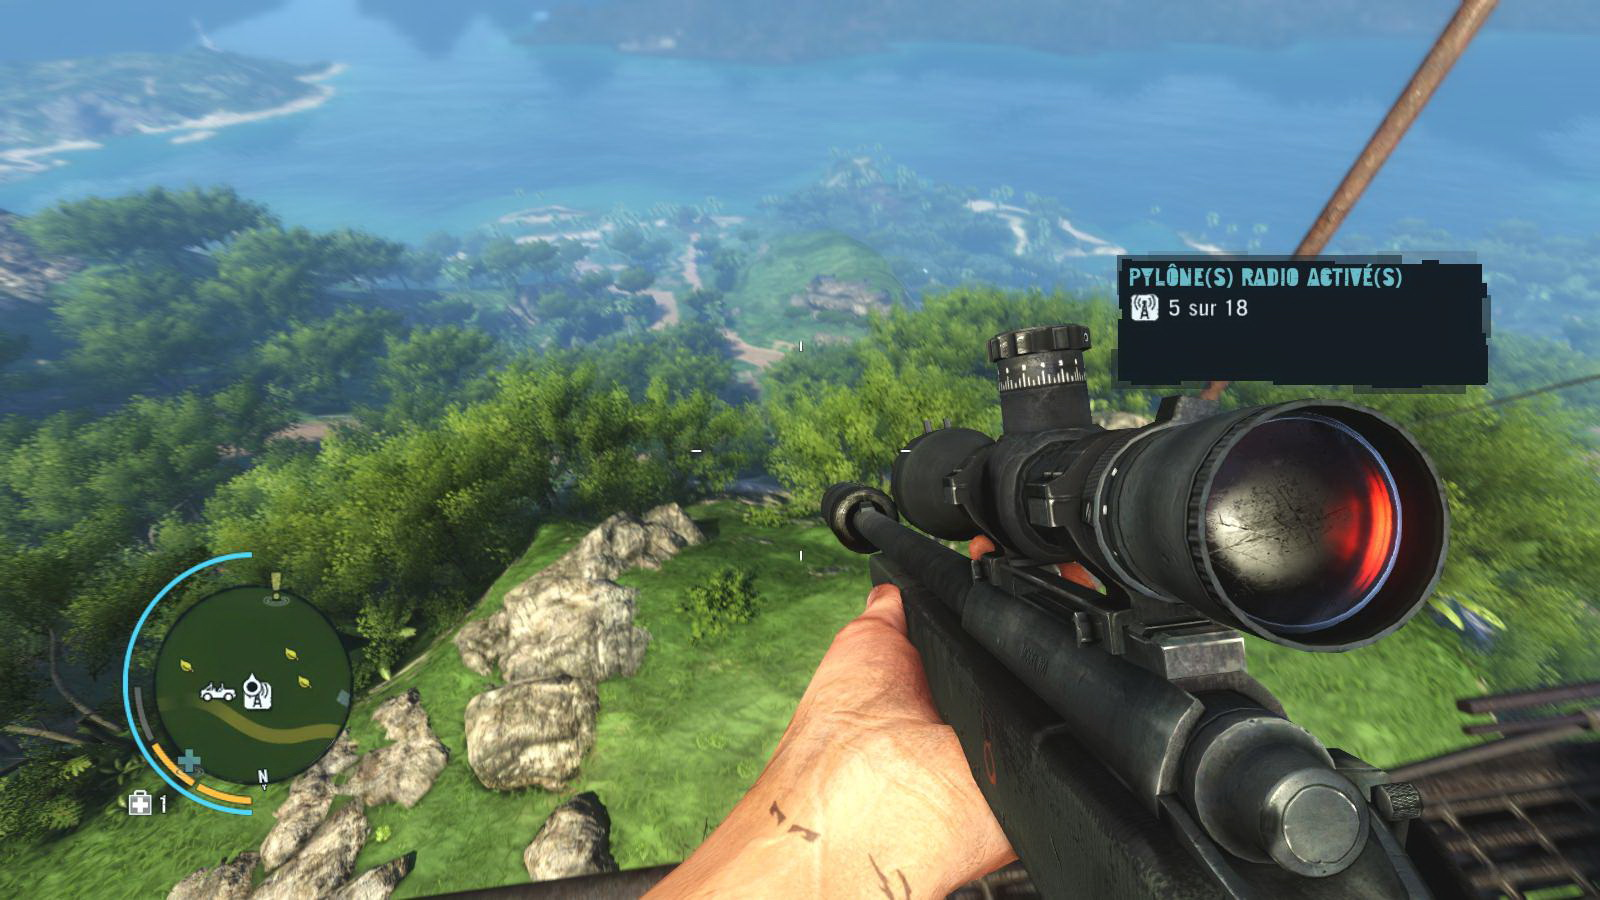 far cry 3 reloaded - PC GAMES TORRENT - Download Zone - TRUSTED SITE